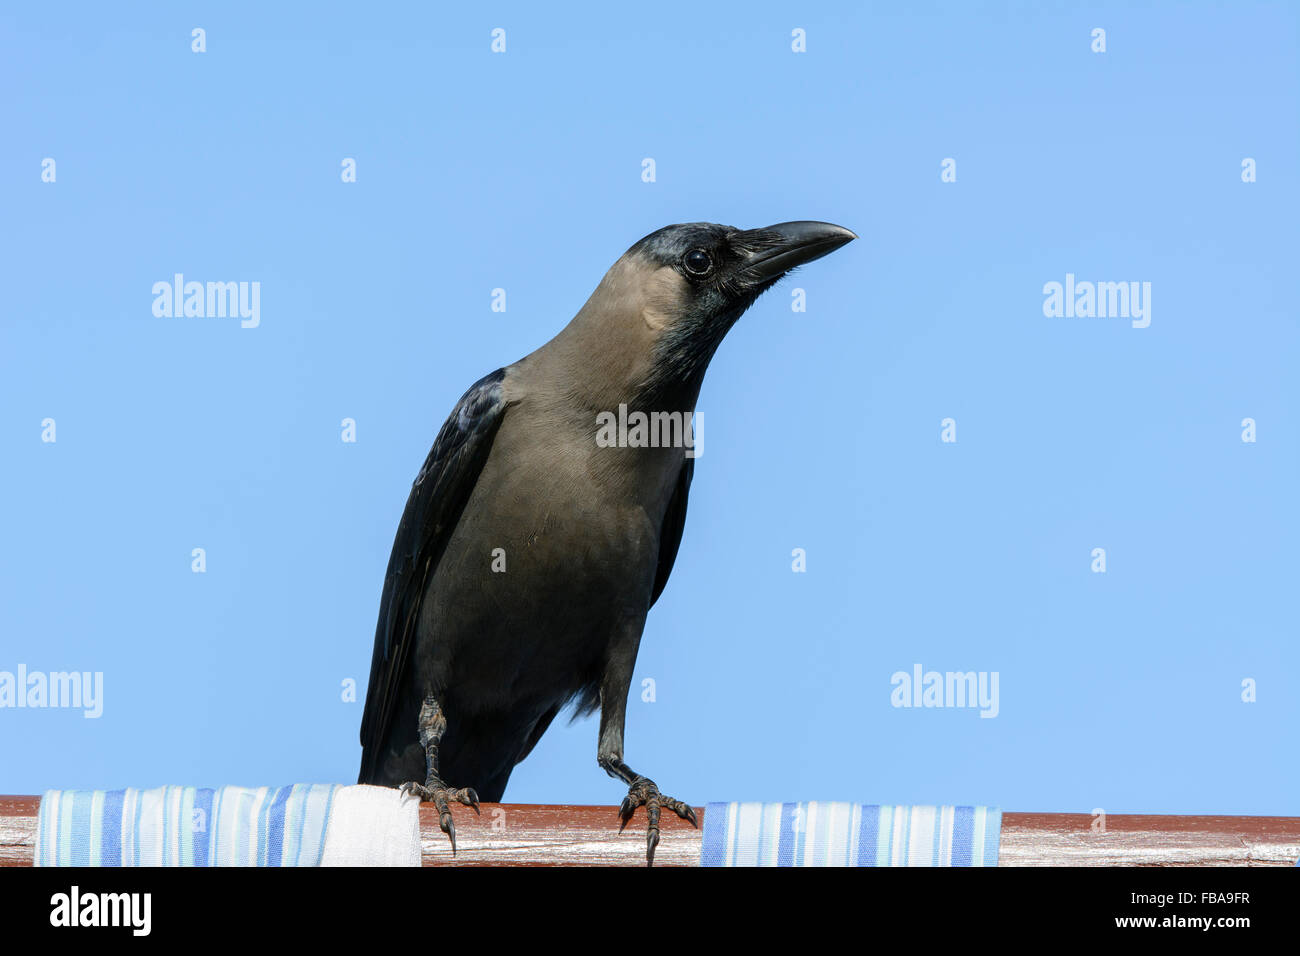 Close up of an Indian House Crow (Corvus splendens), one of the most common birds in Goa, India, Asia - Stock Image